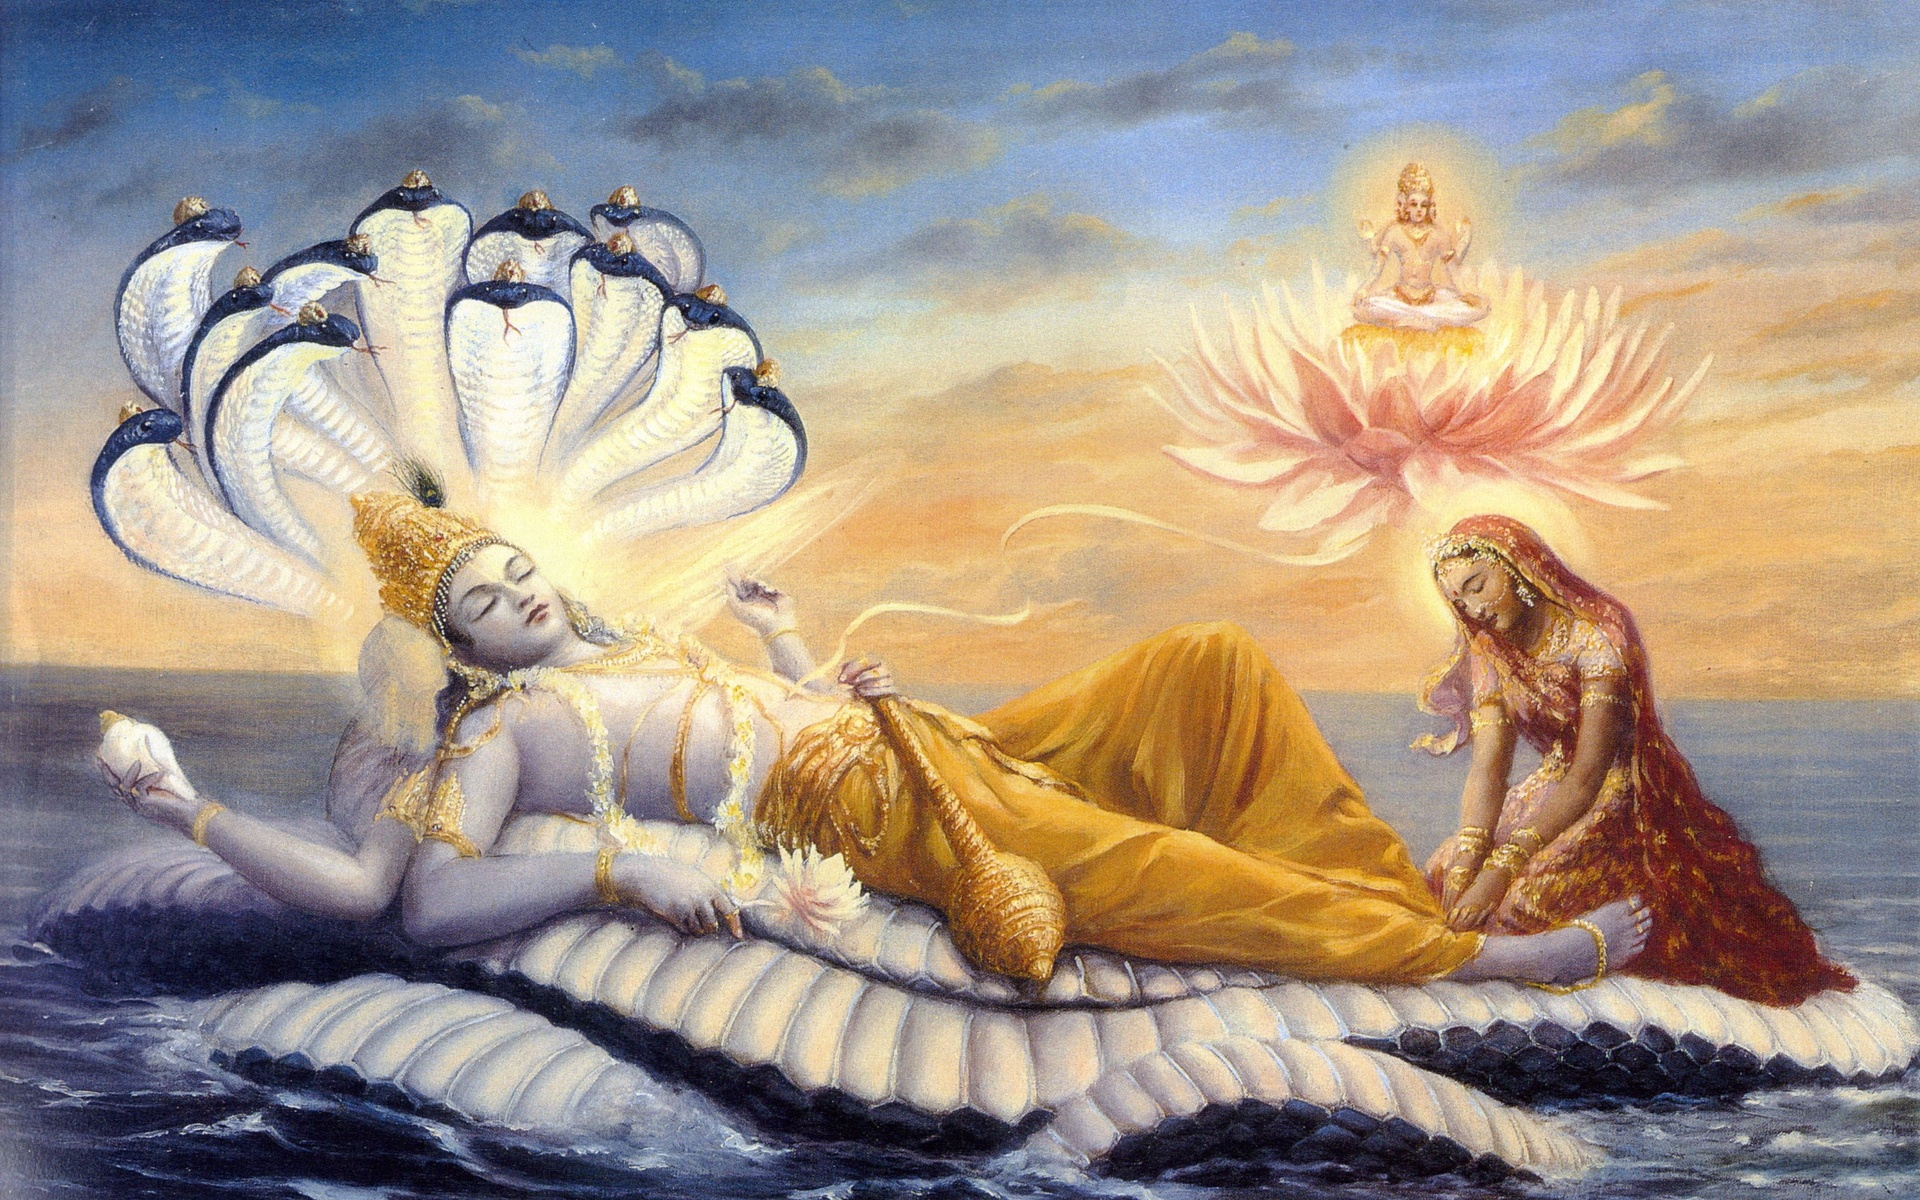 Vishnu Chalisa Aarti Wallpapers Amazoncomau Appstore For Android